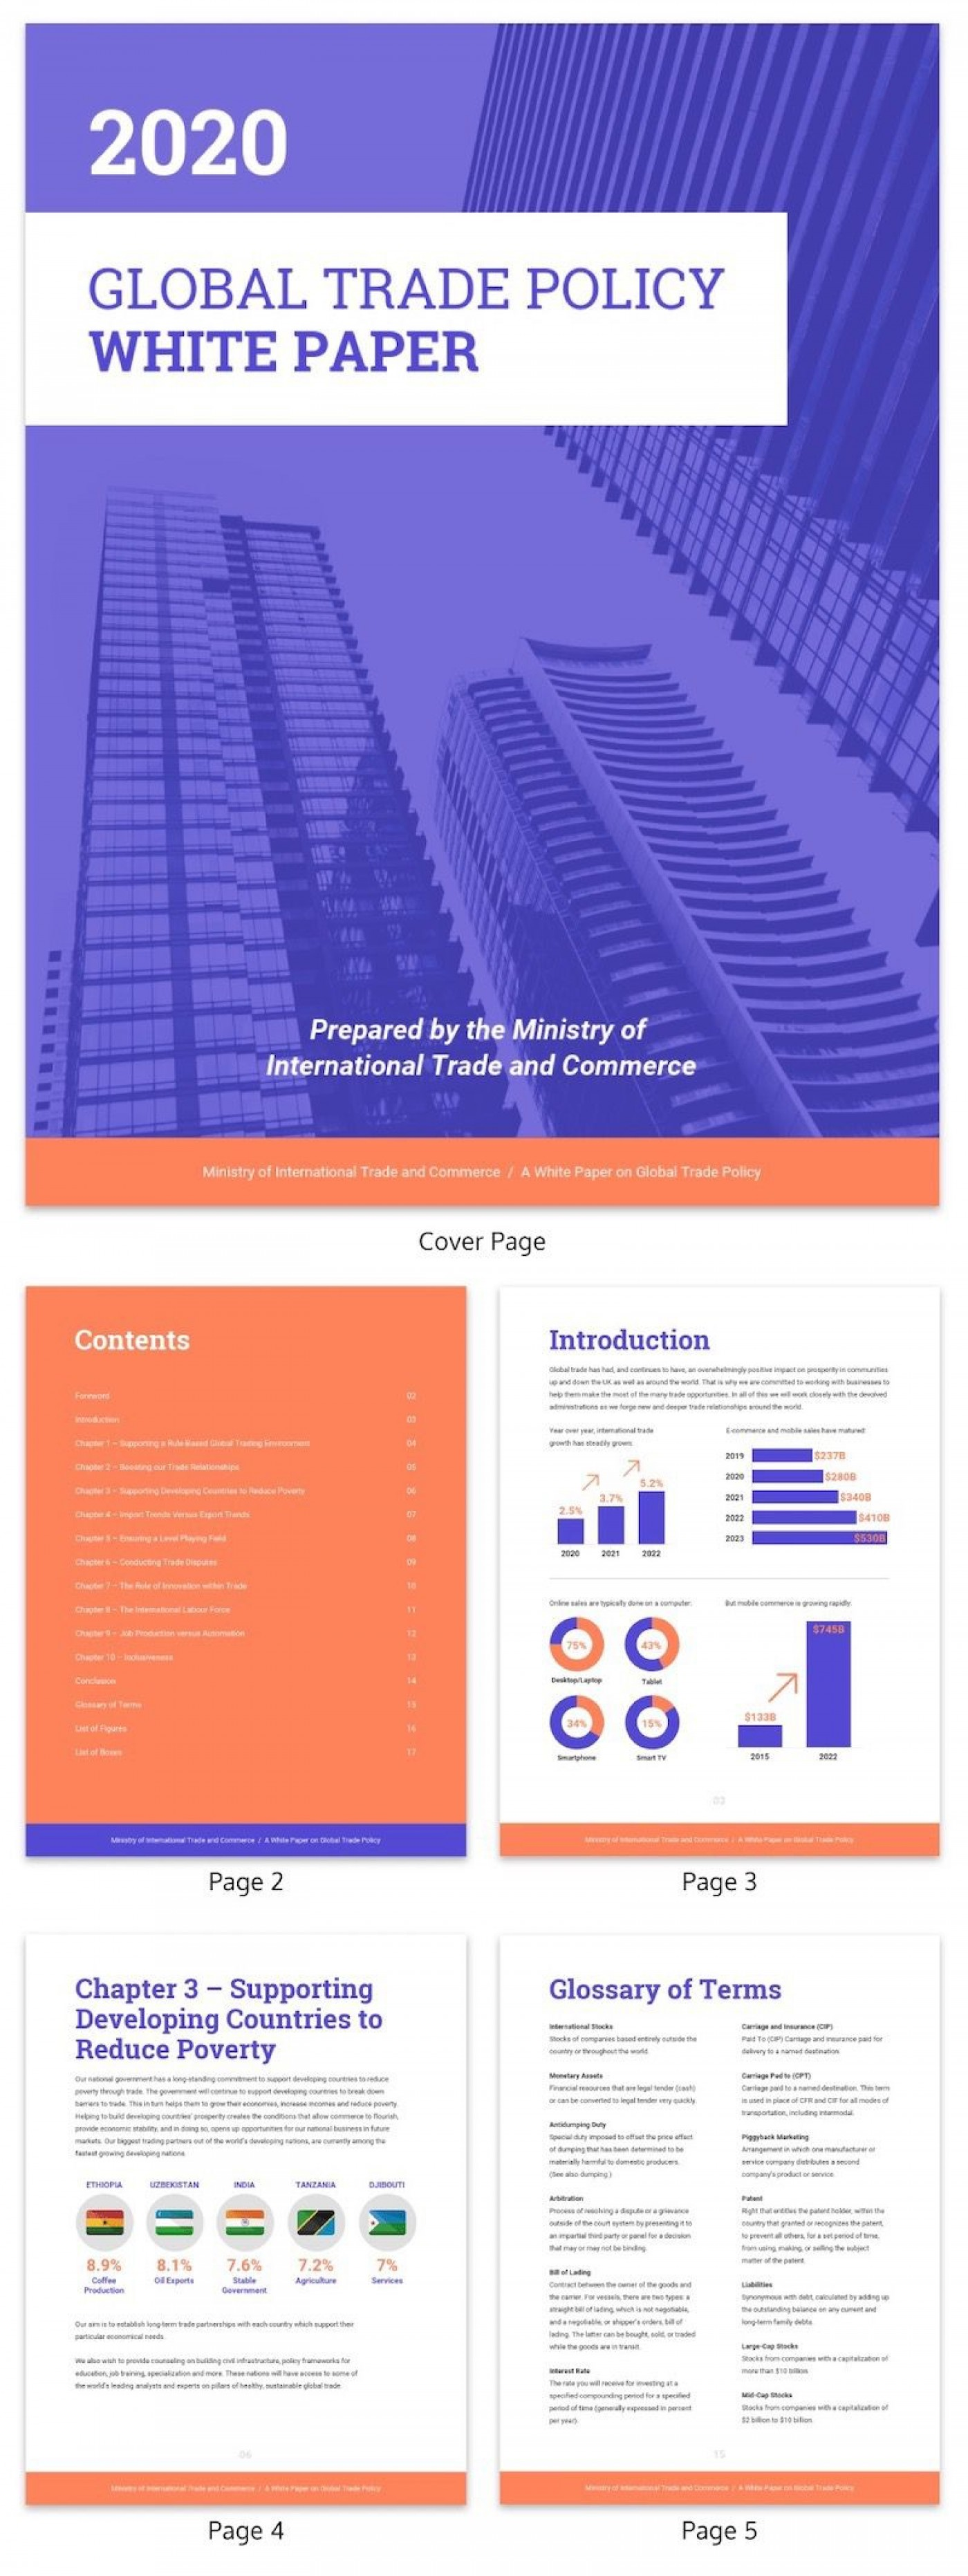 005 Unusual Technical White Paper Template Sample  Example Doc1400